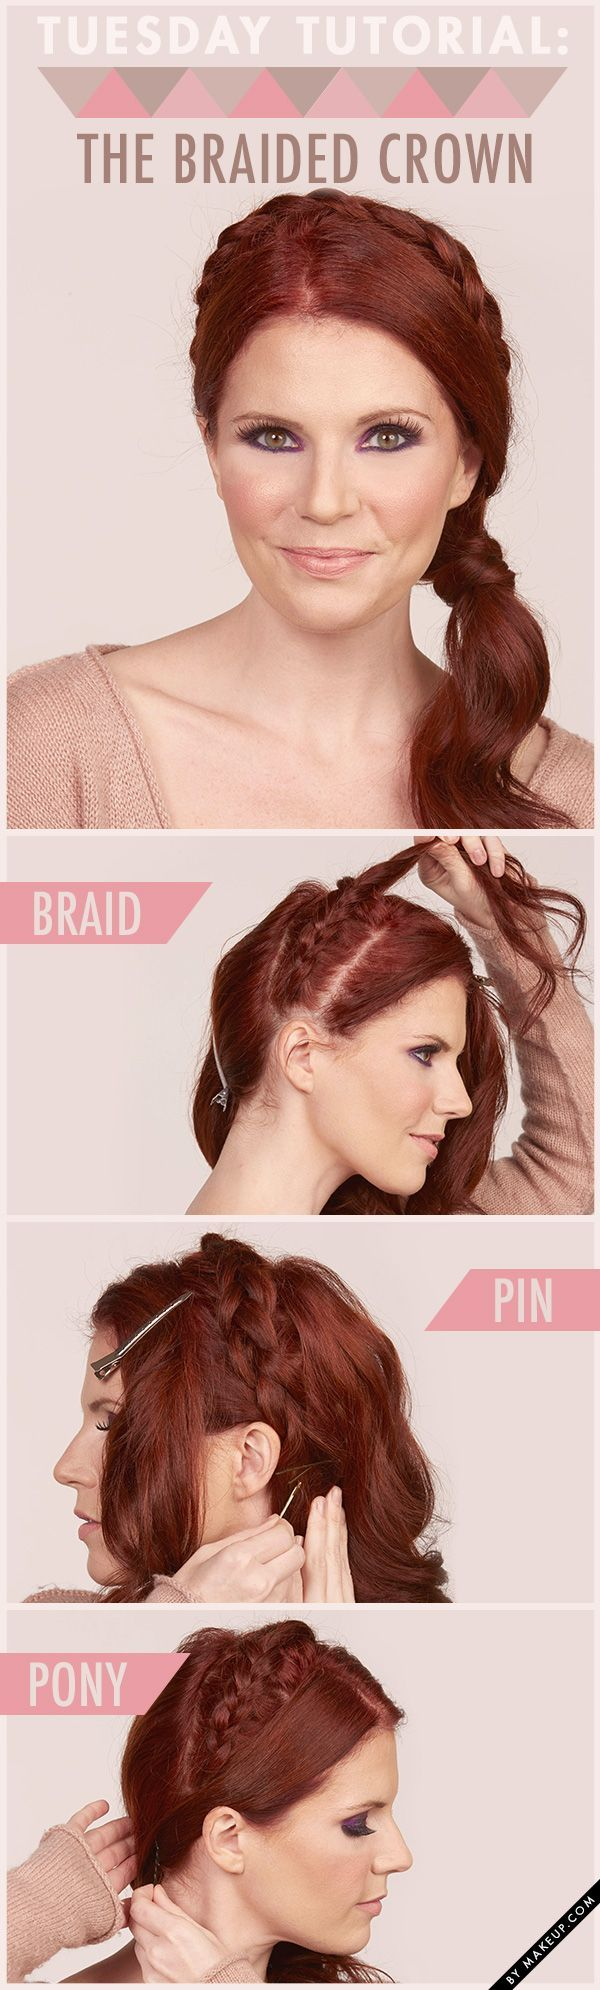 stylish mermaid hairstyles to pair your looks super easy